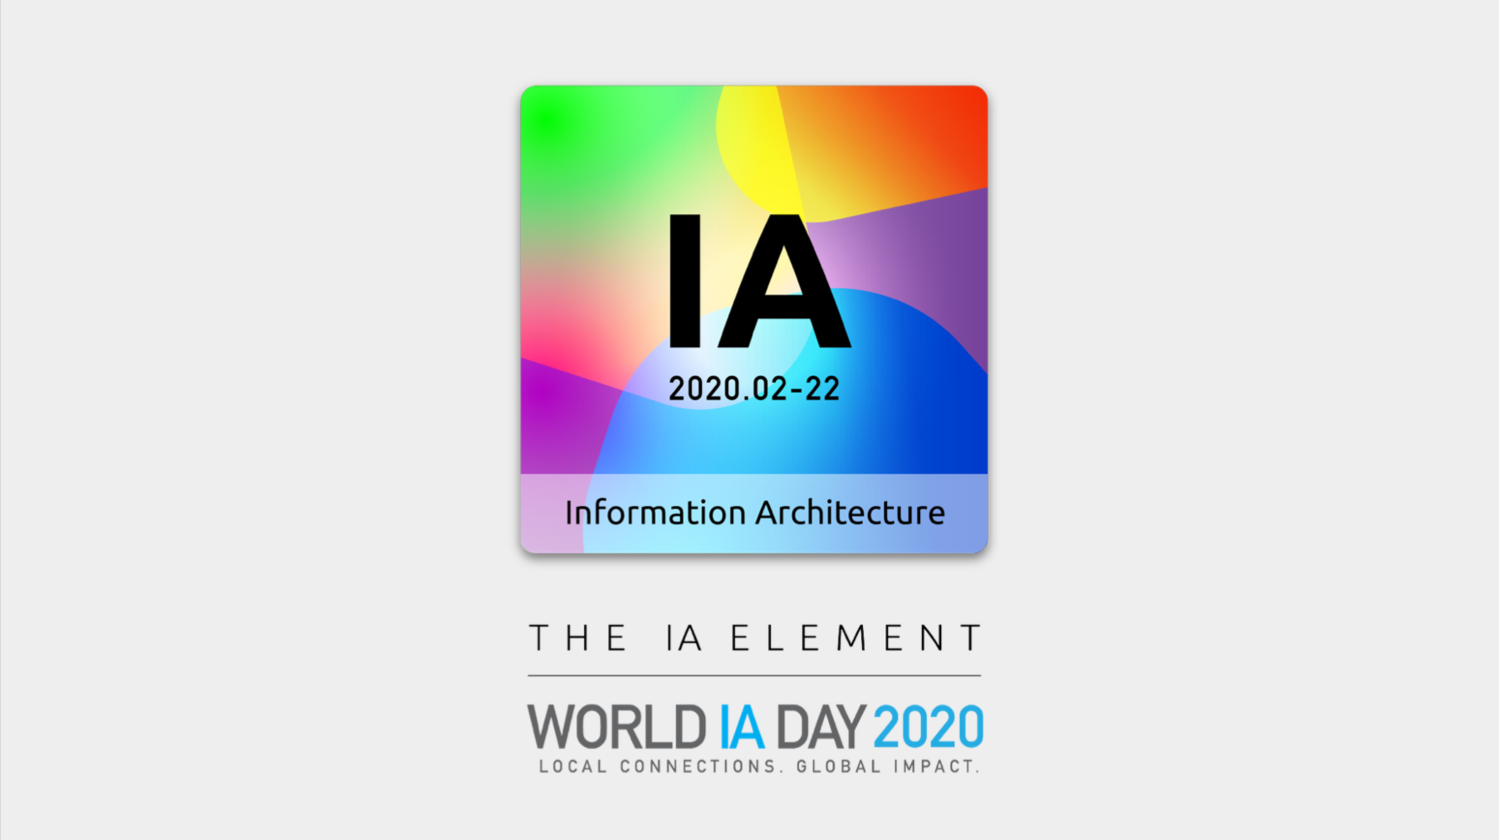 World IA Day 2020, New Delhi